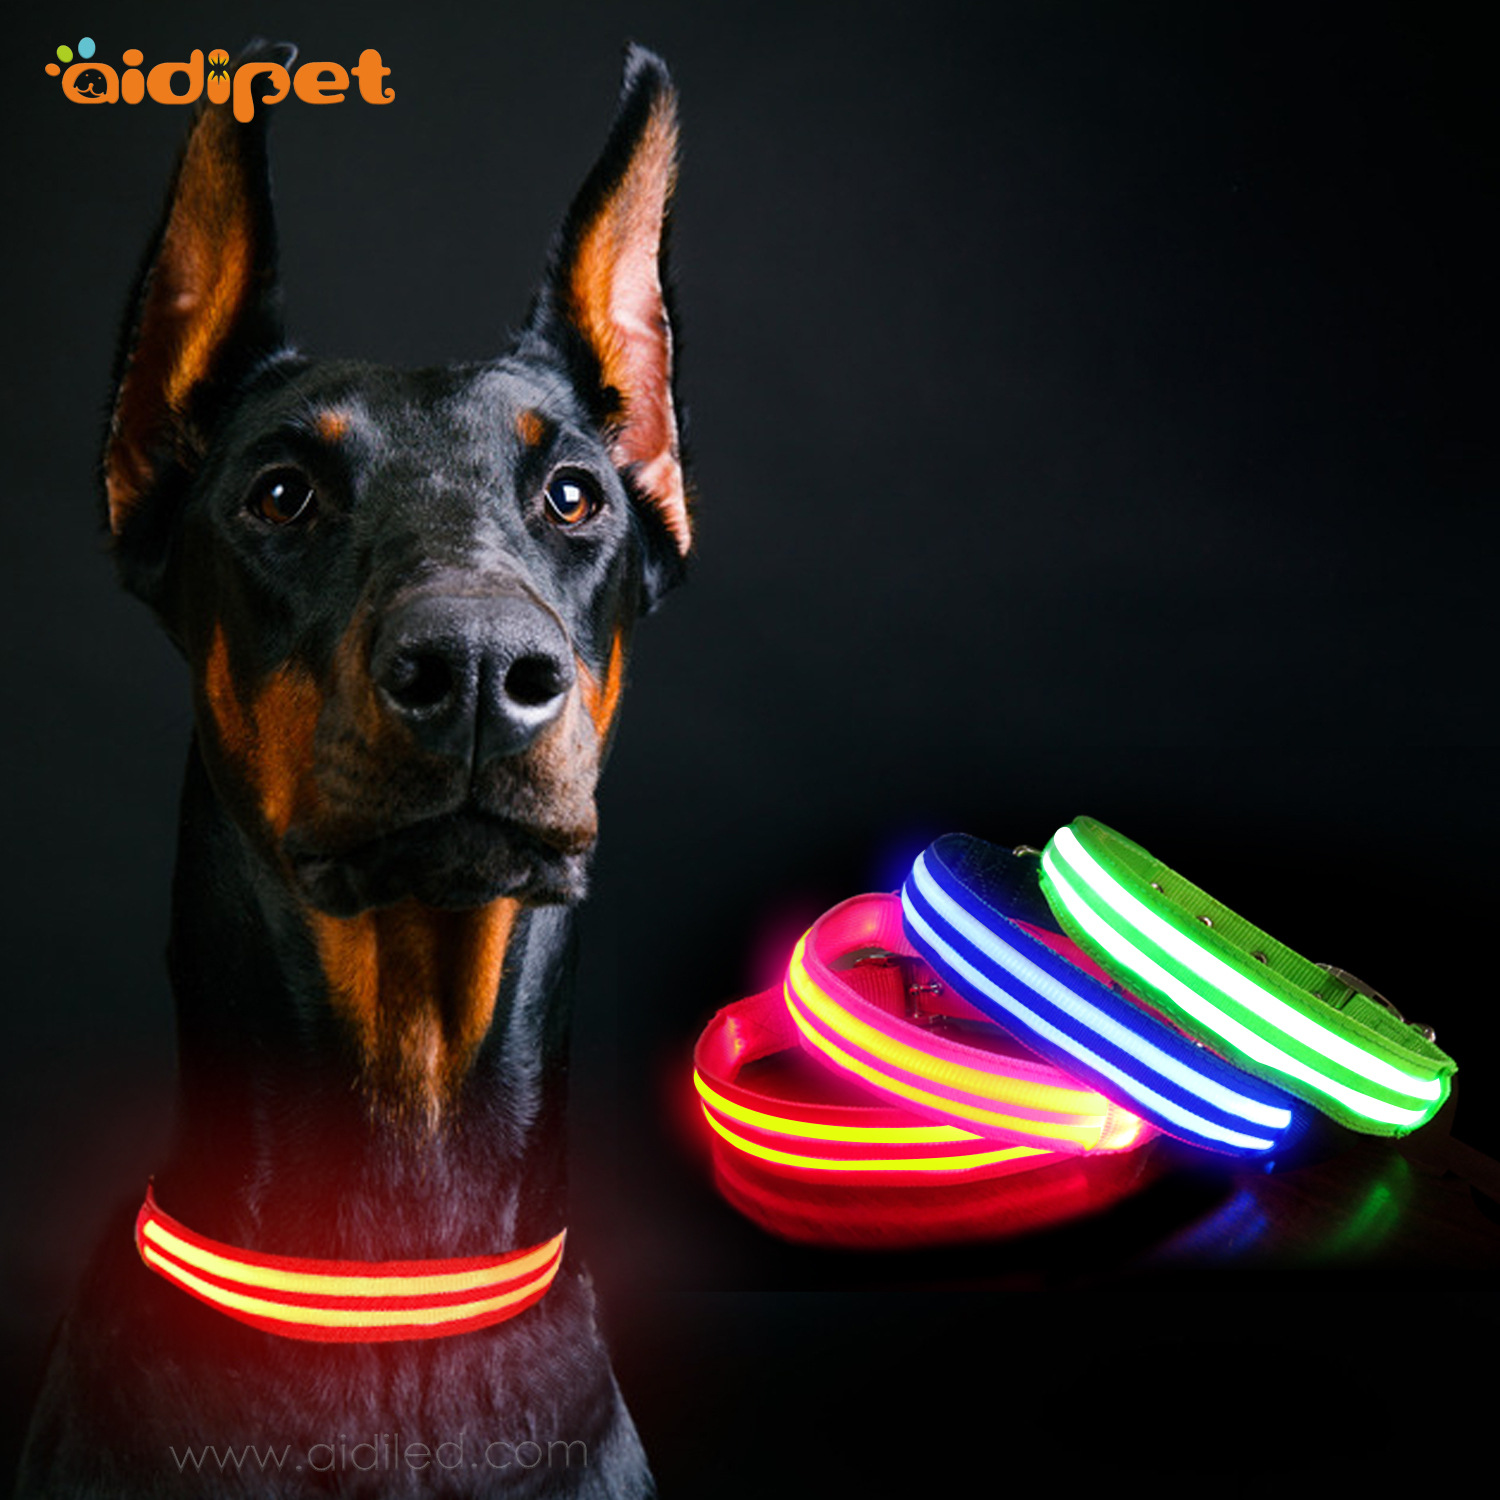 Supply Of Goods Double Dao Guang Tiao Traction Neck Ring Fashion Luminous Collar LED Dog Collar Pet Supplies